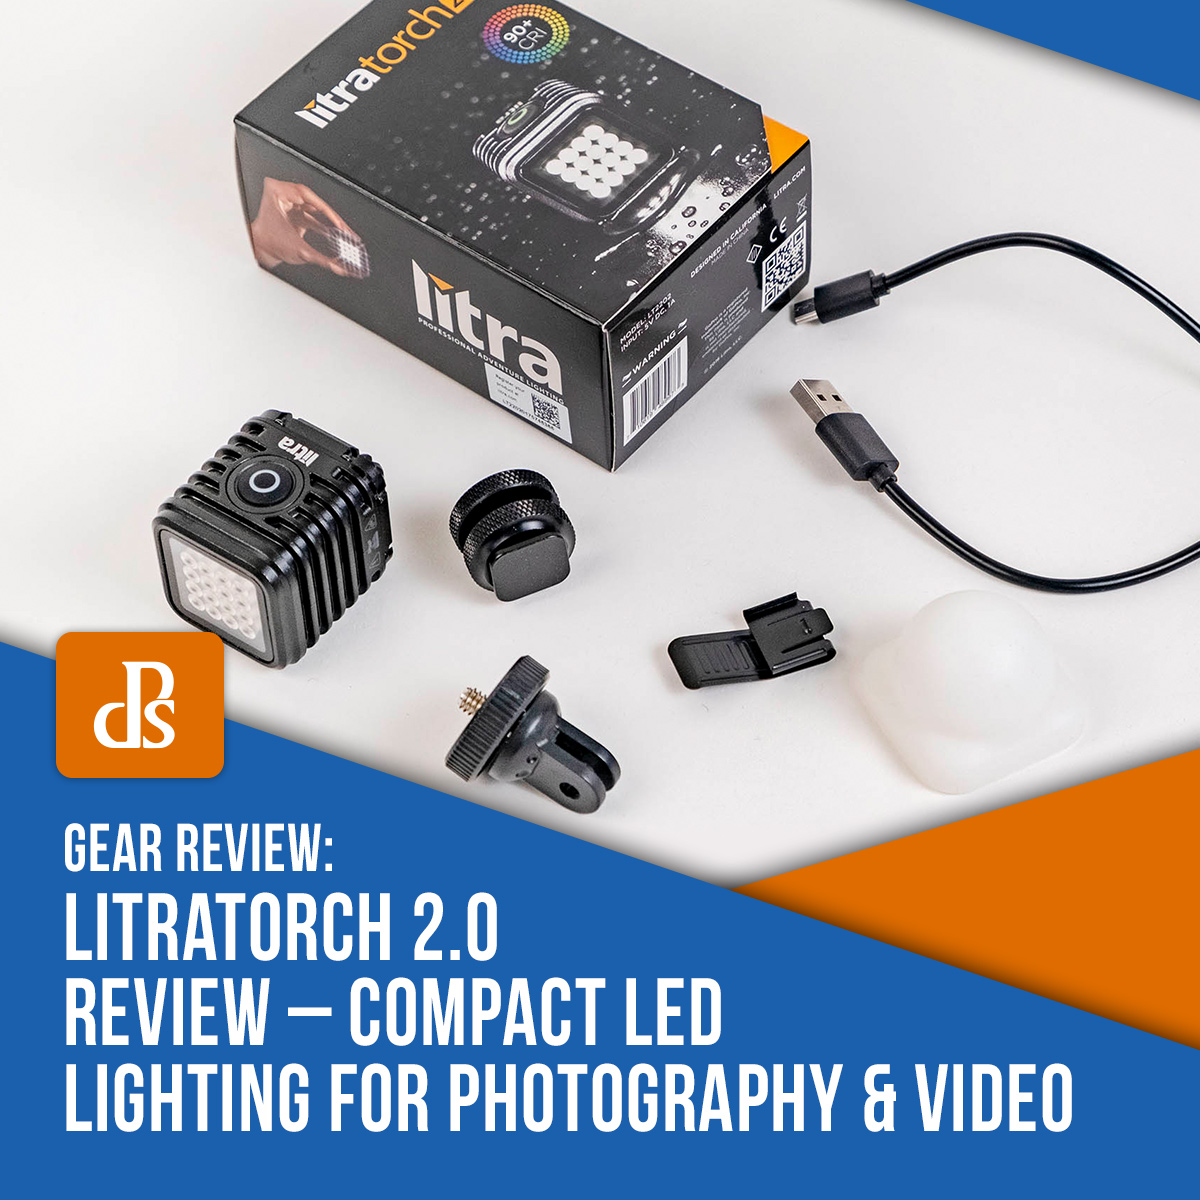 https://i2.wp.com/digital-photography-school.com/wp-content/uploads/2020/04/dps-litratorch-2-review.jpg?ssl=1